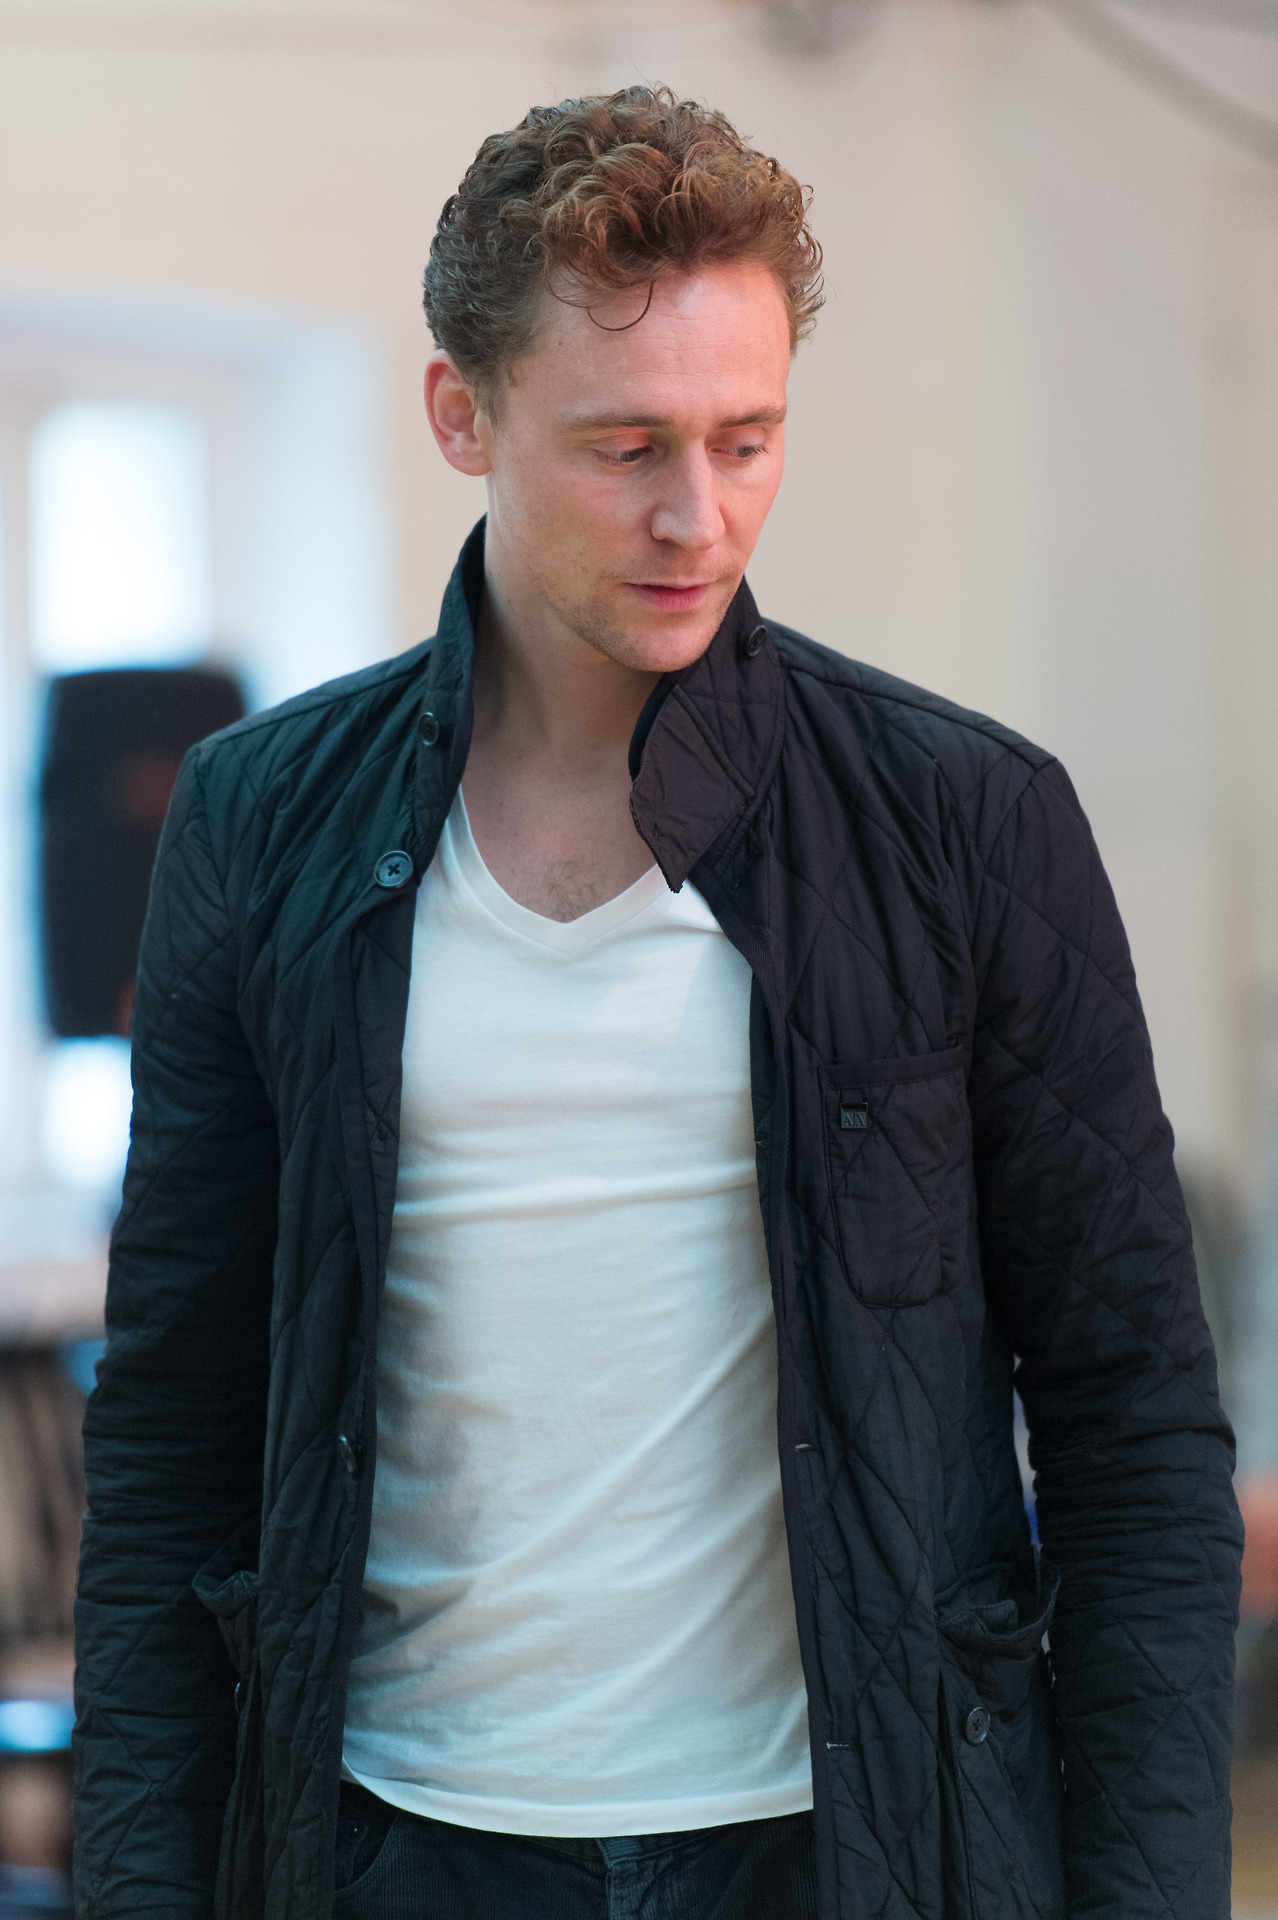 Tom Hiddleston photo #539238